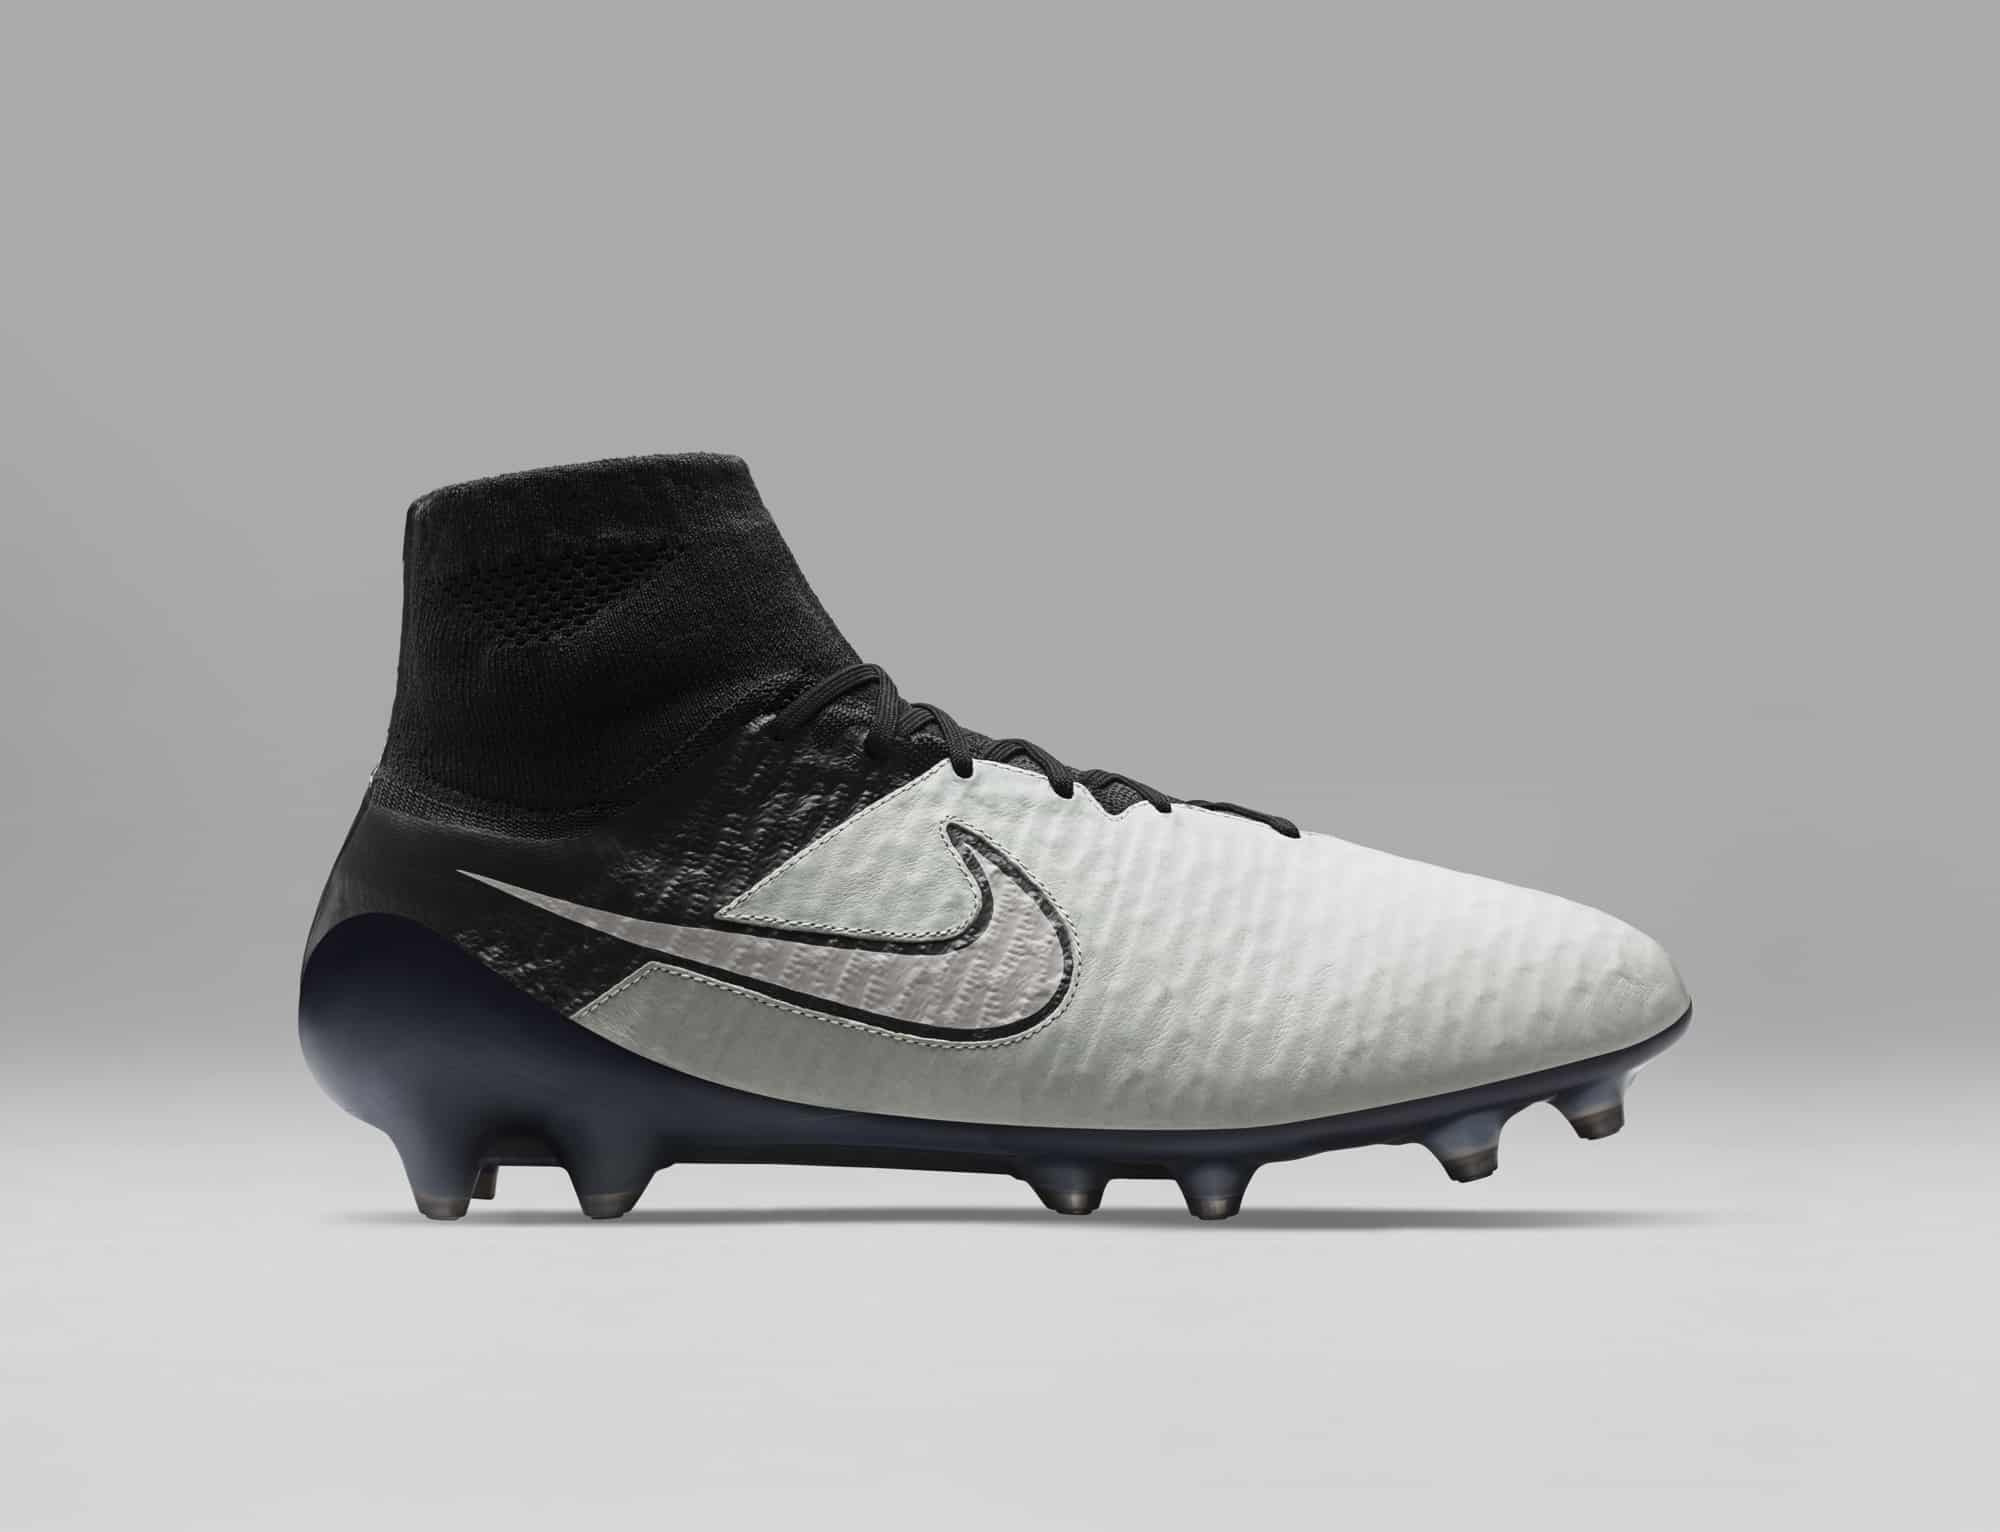 chaussure-foot-nike-magista-techcraft-3-2016-3